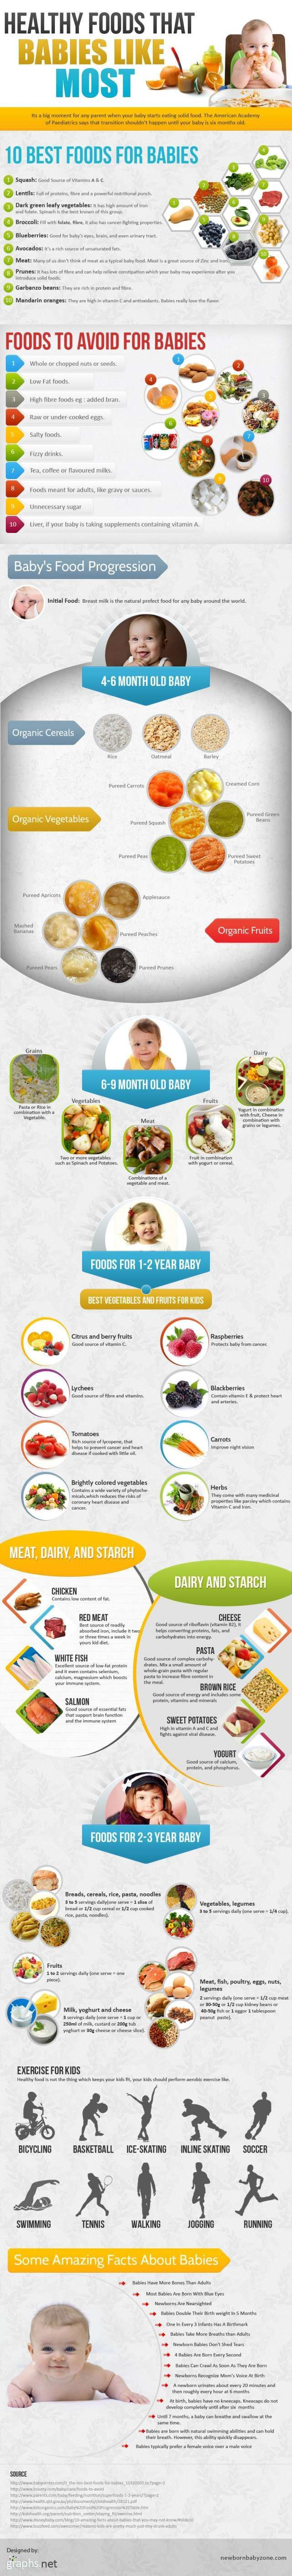 Best health food items - Healthy Foods That Babies Like I Think They Go A Little Overboard With Organics But